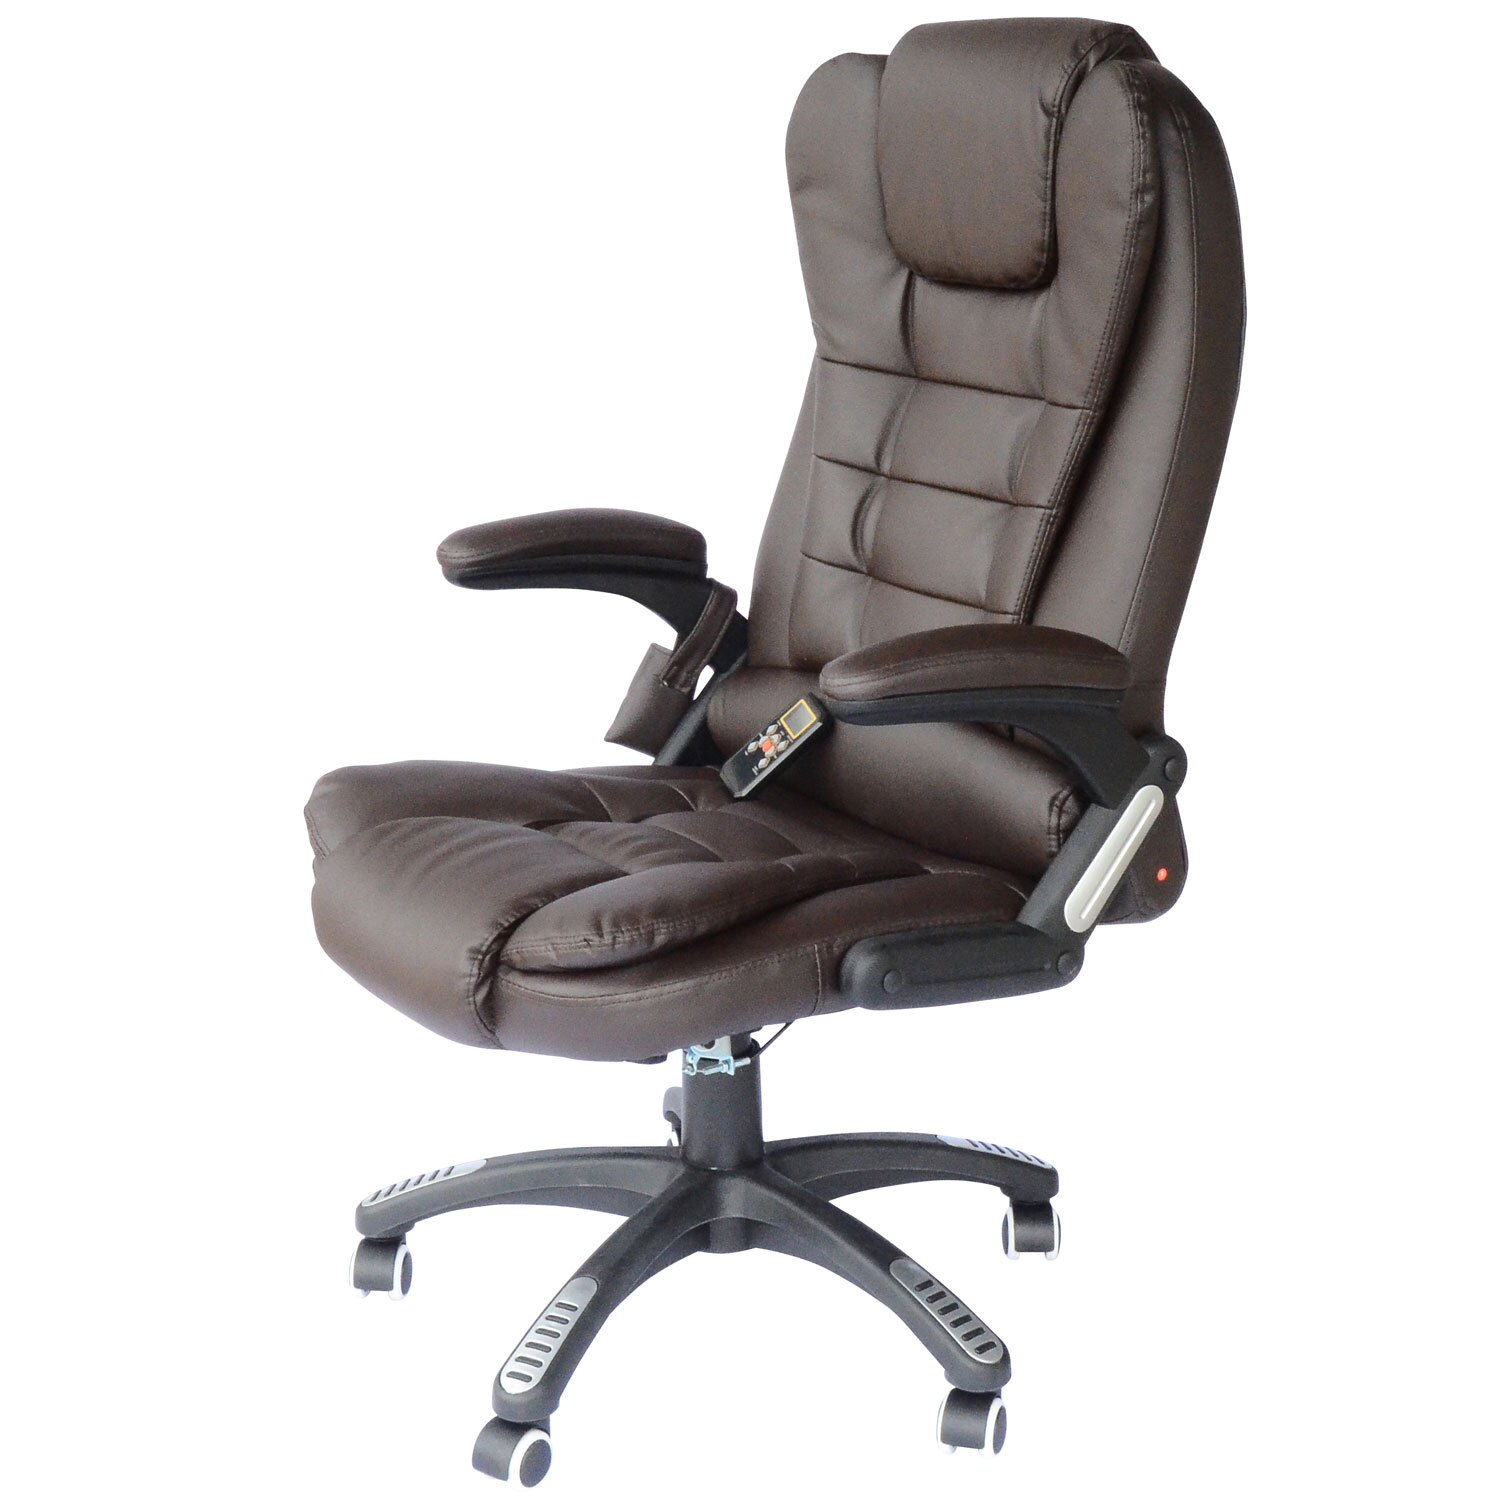 Office Chair Massager Aosom Homcom High Back Executive Ergonomic Pu Leather